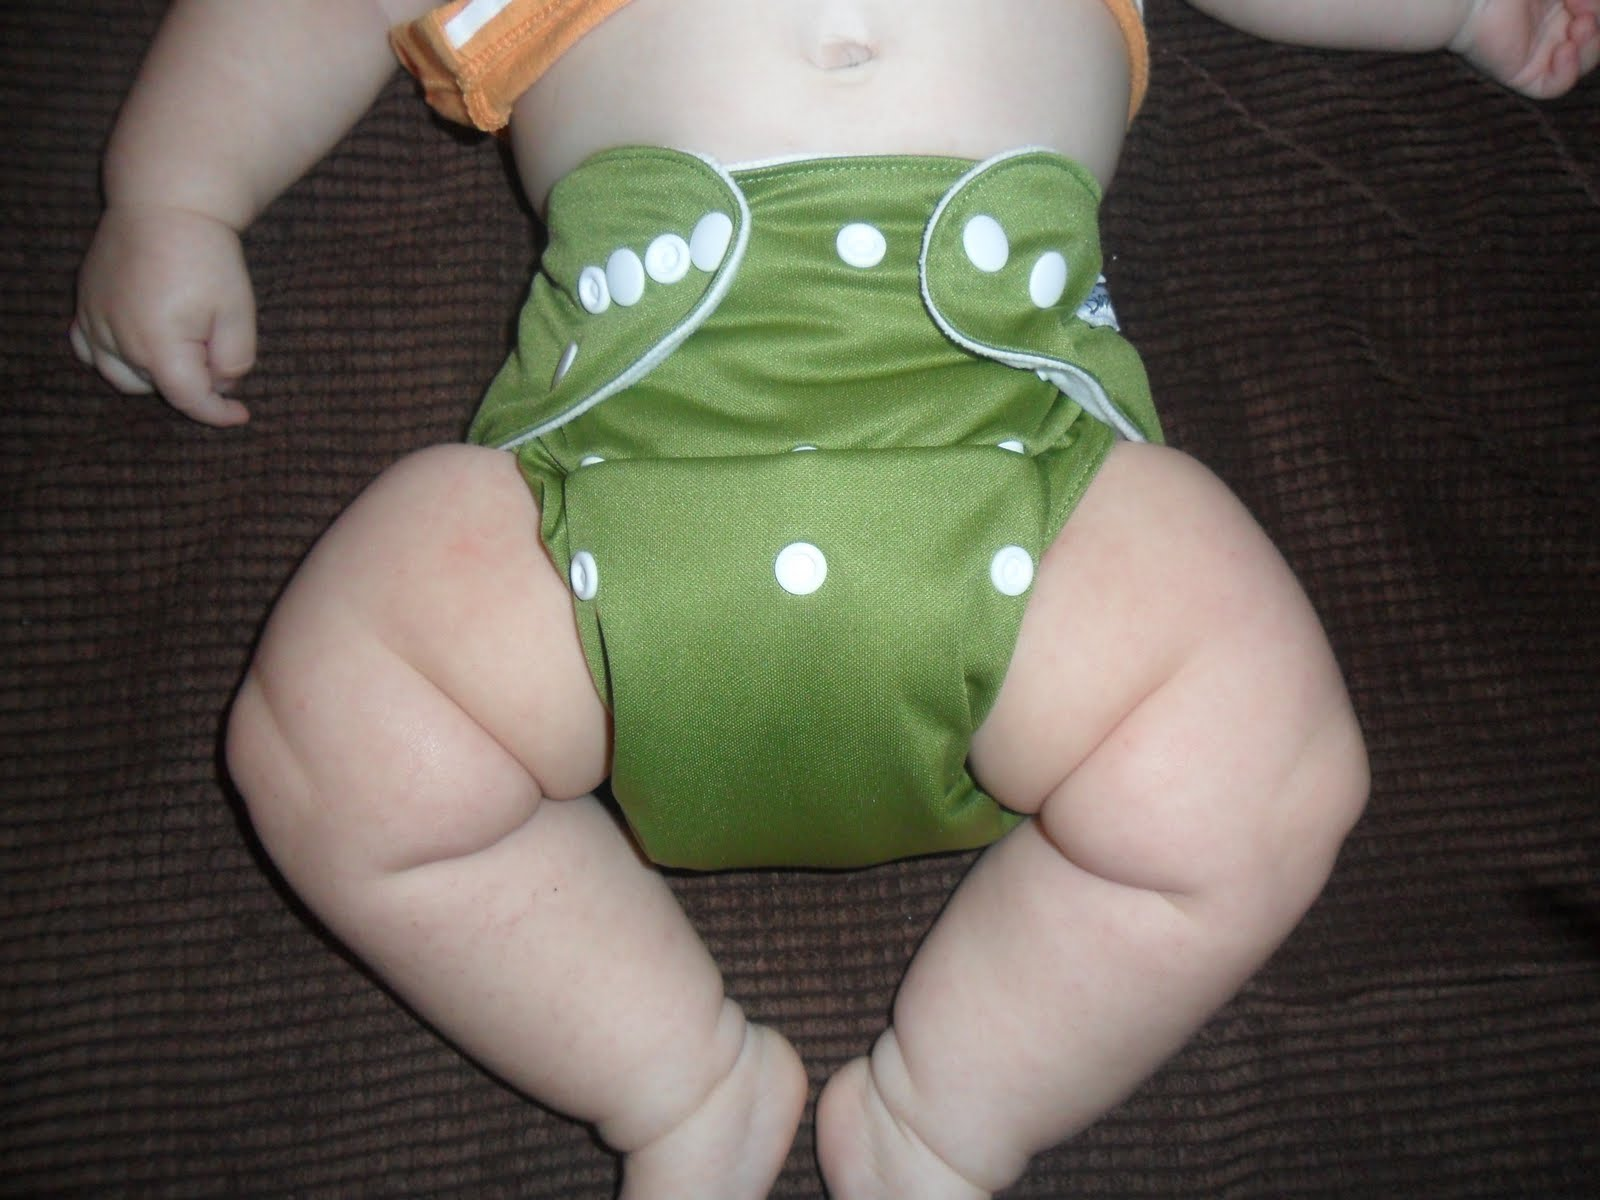 quality diapers star diapers - photo #12